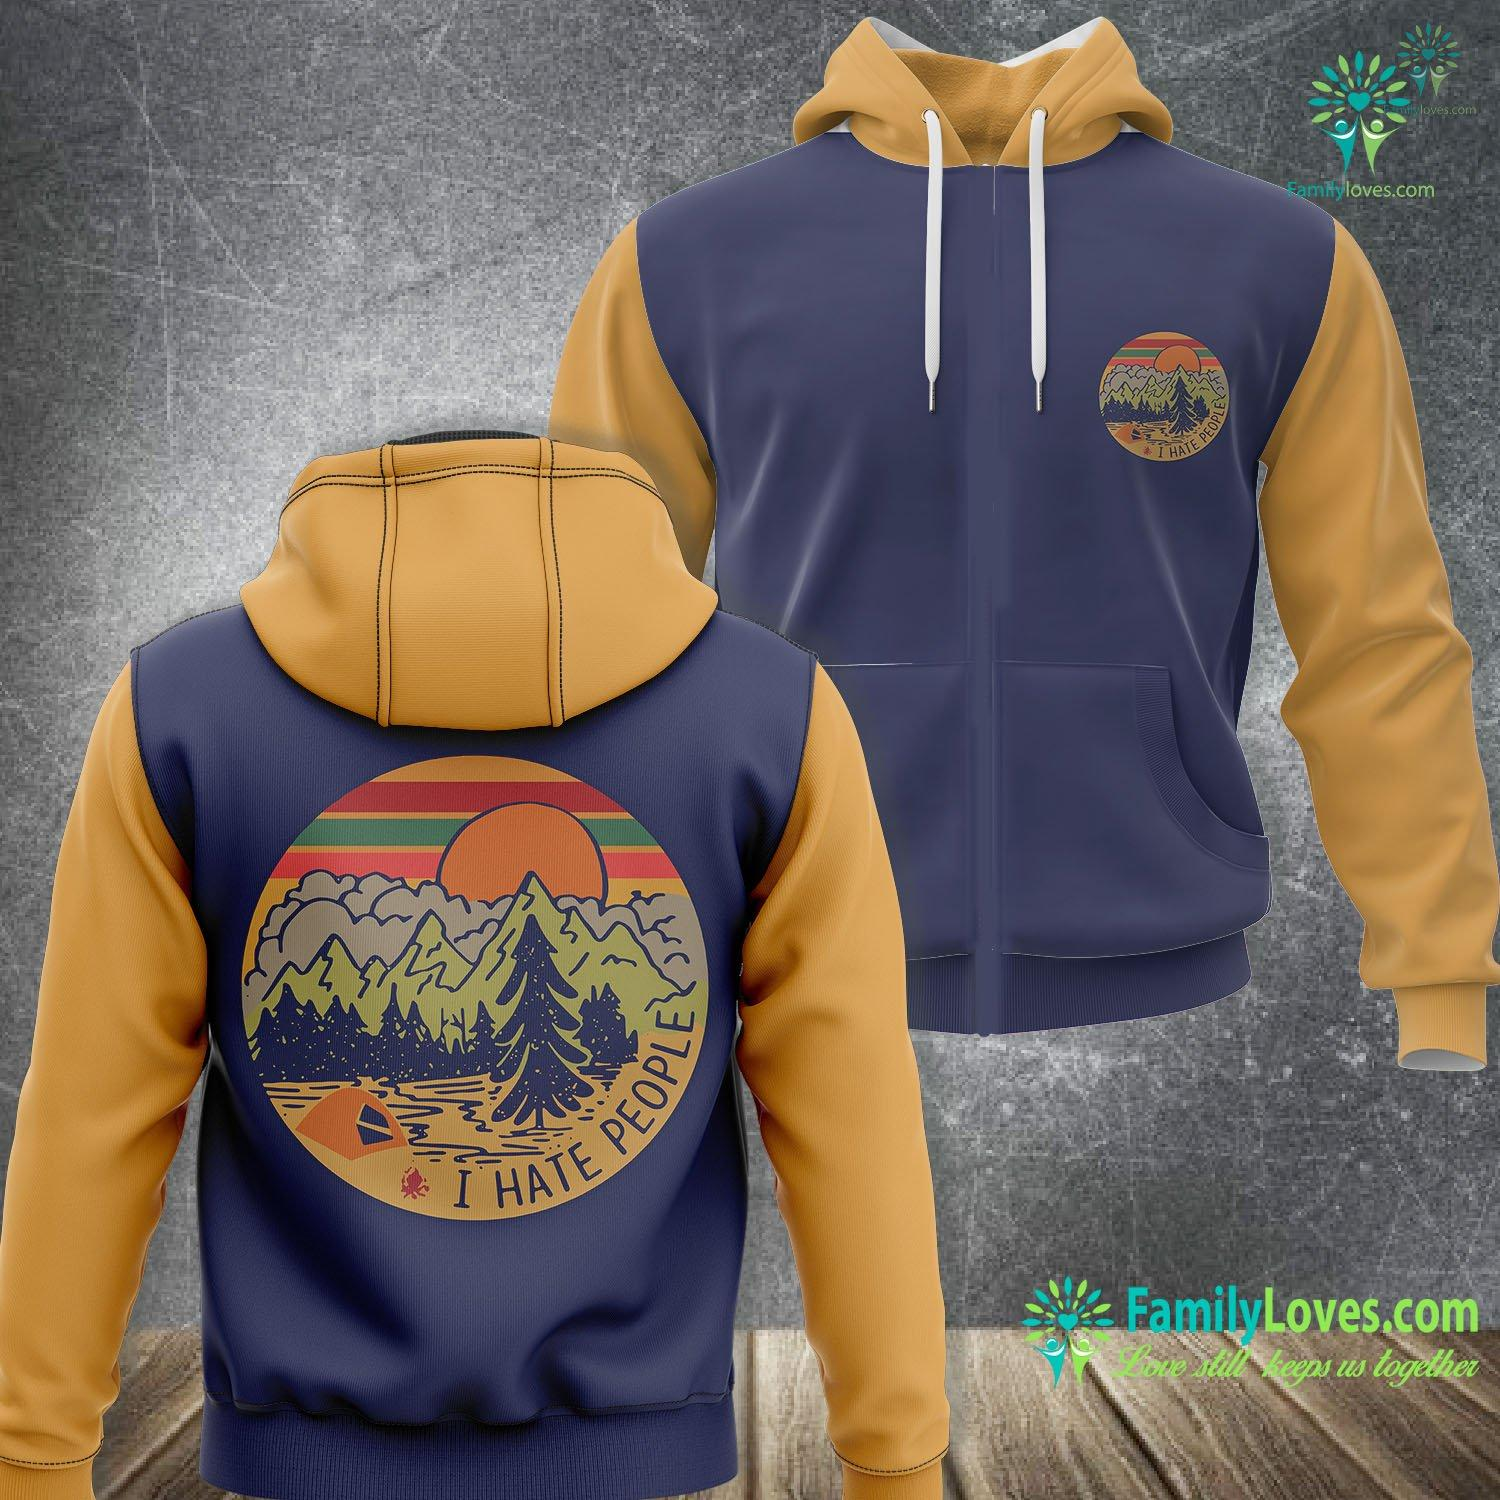 I Hate People Camping 3D All Over Printed Hoodie Familyloves.com